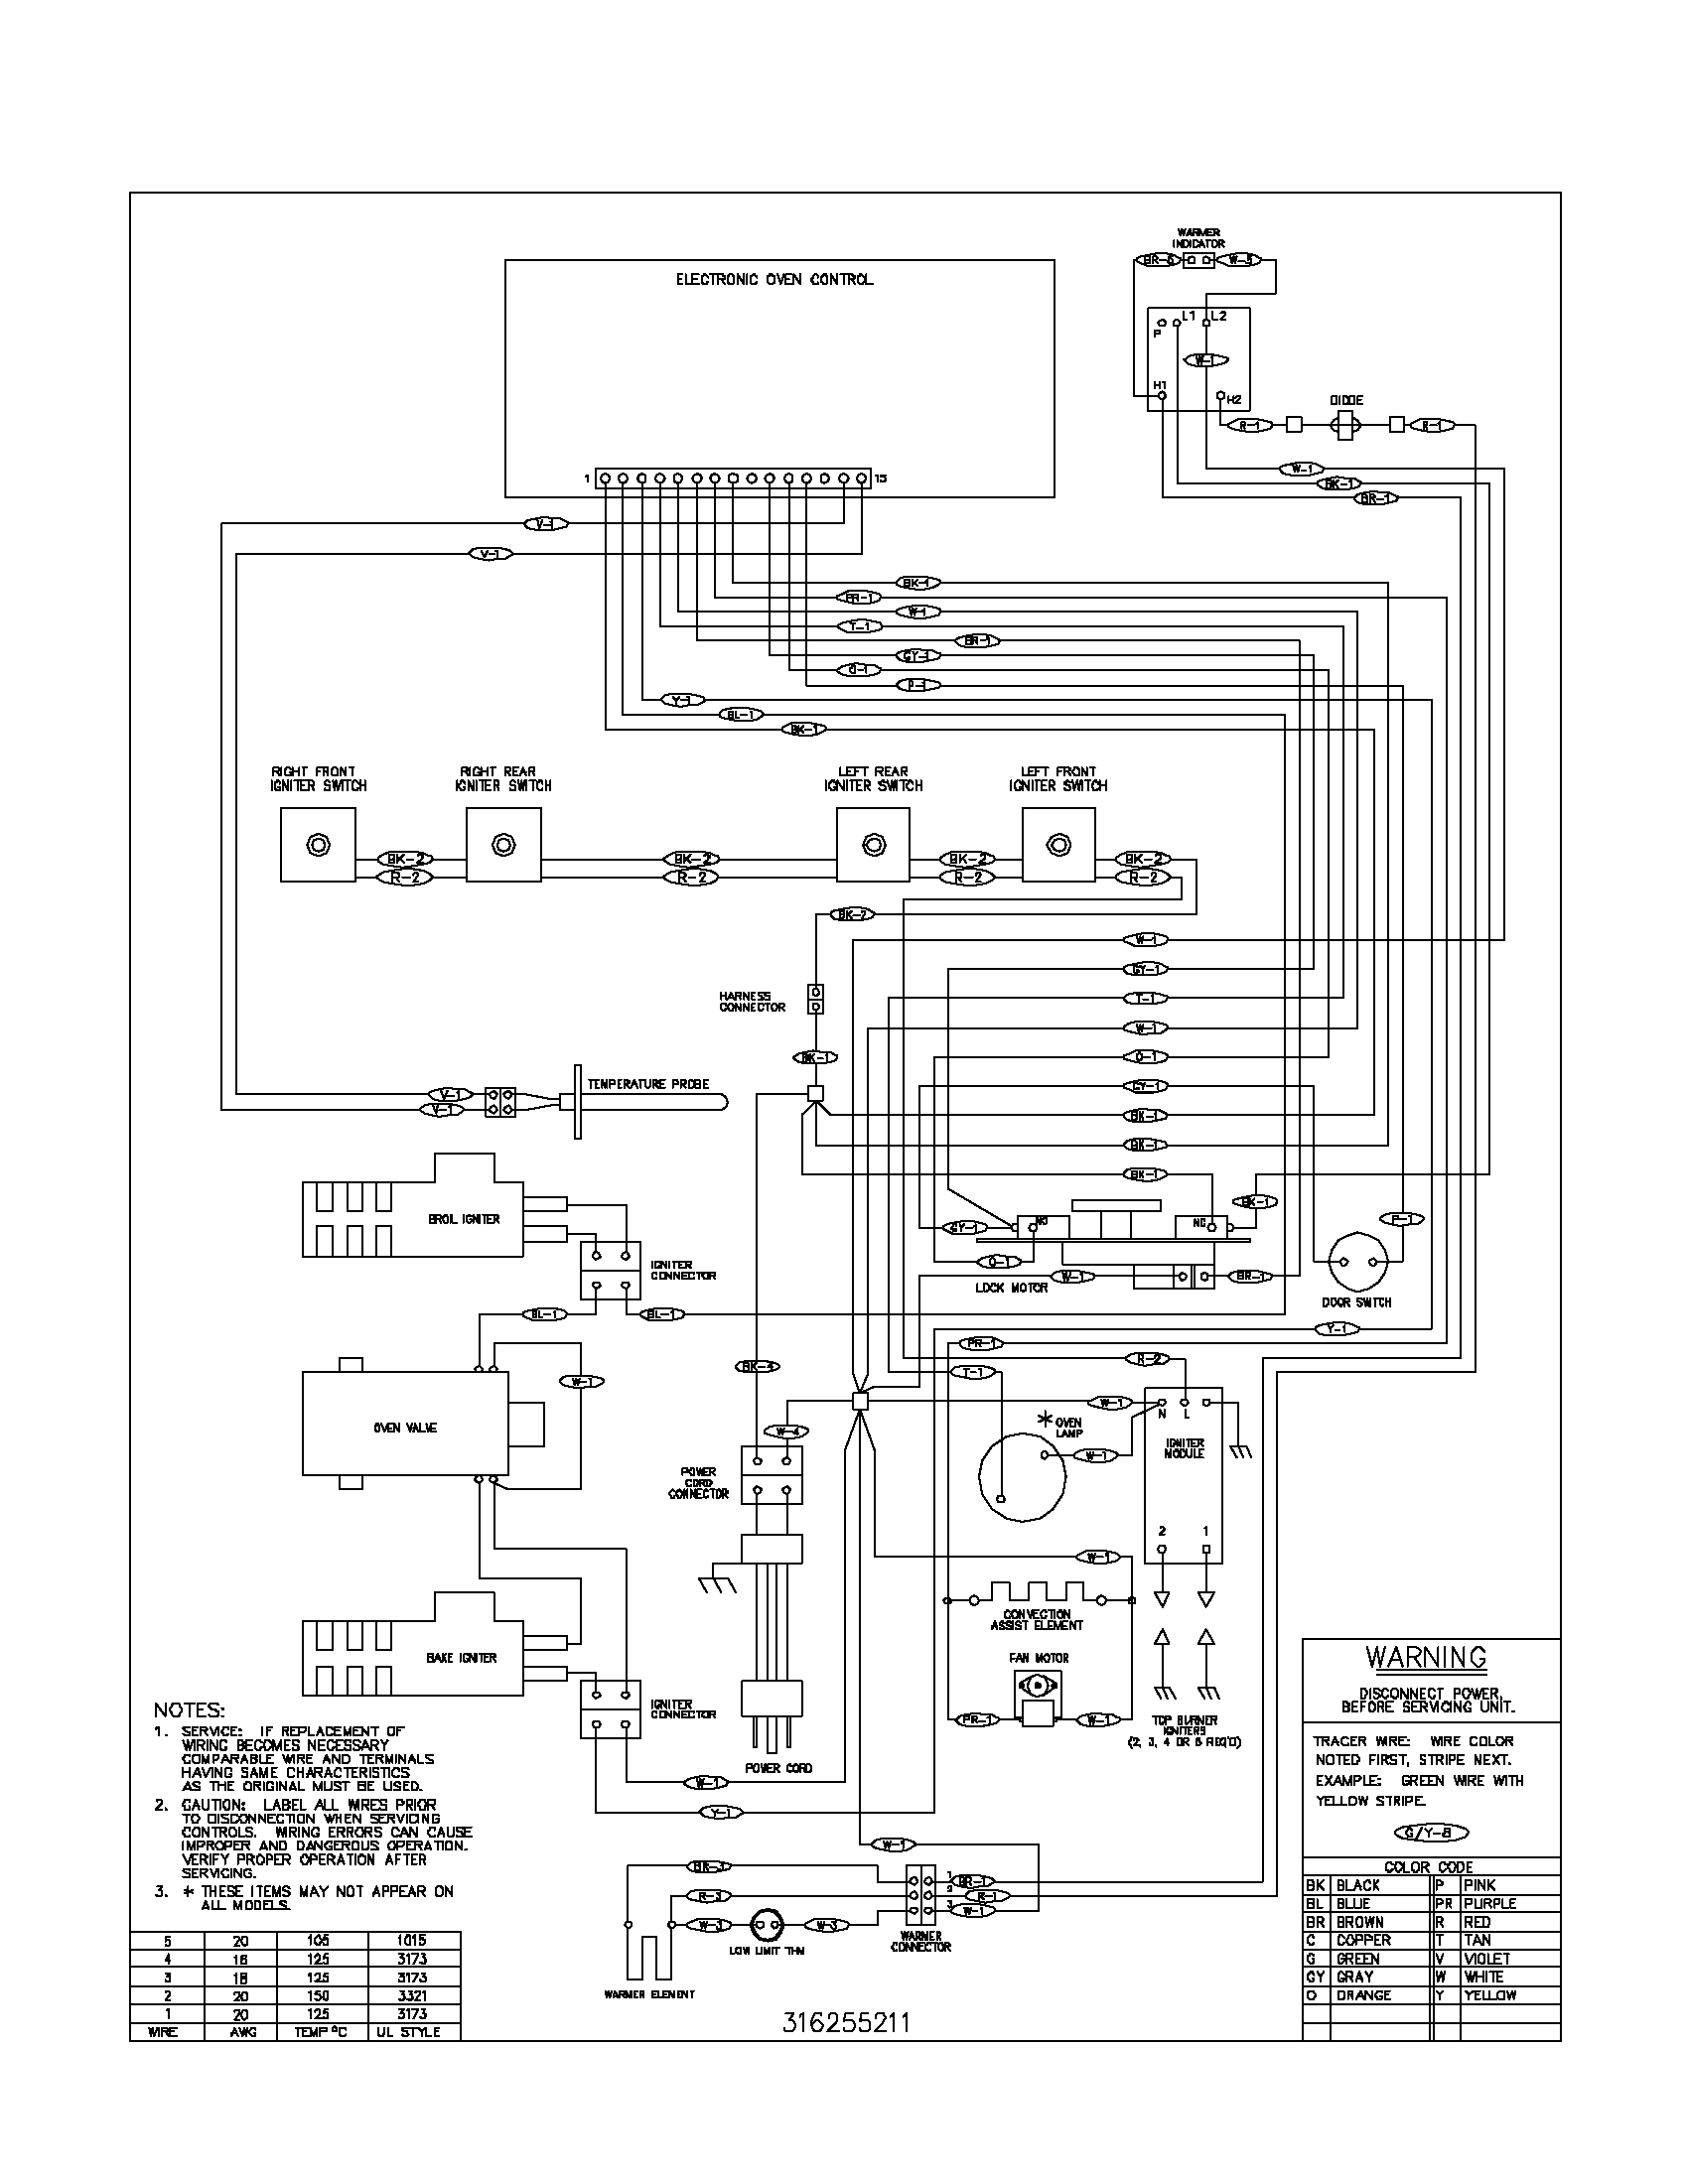 wiring diagram parts frigidaire gallery refrigerator wiring diagram frigidaire wiring  at mifinder.co